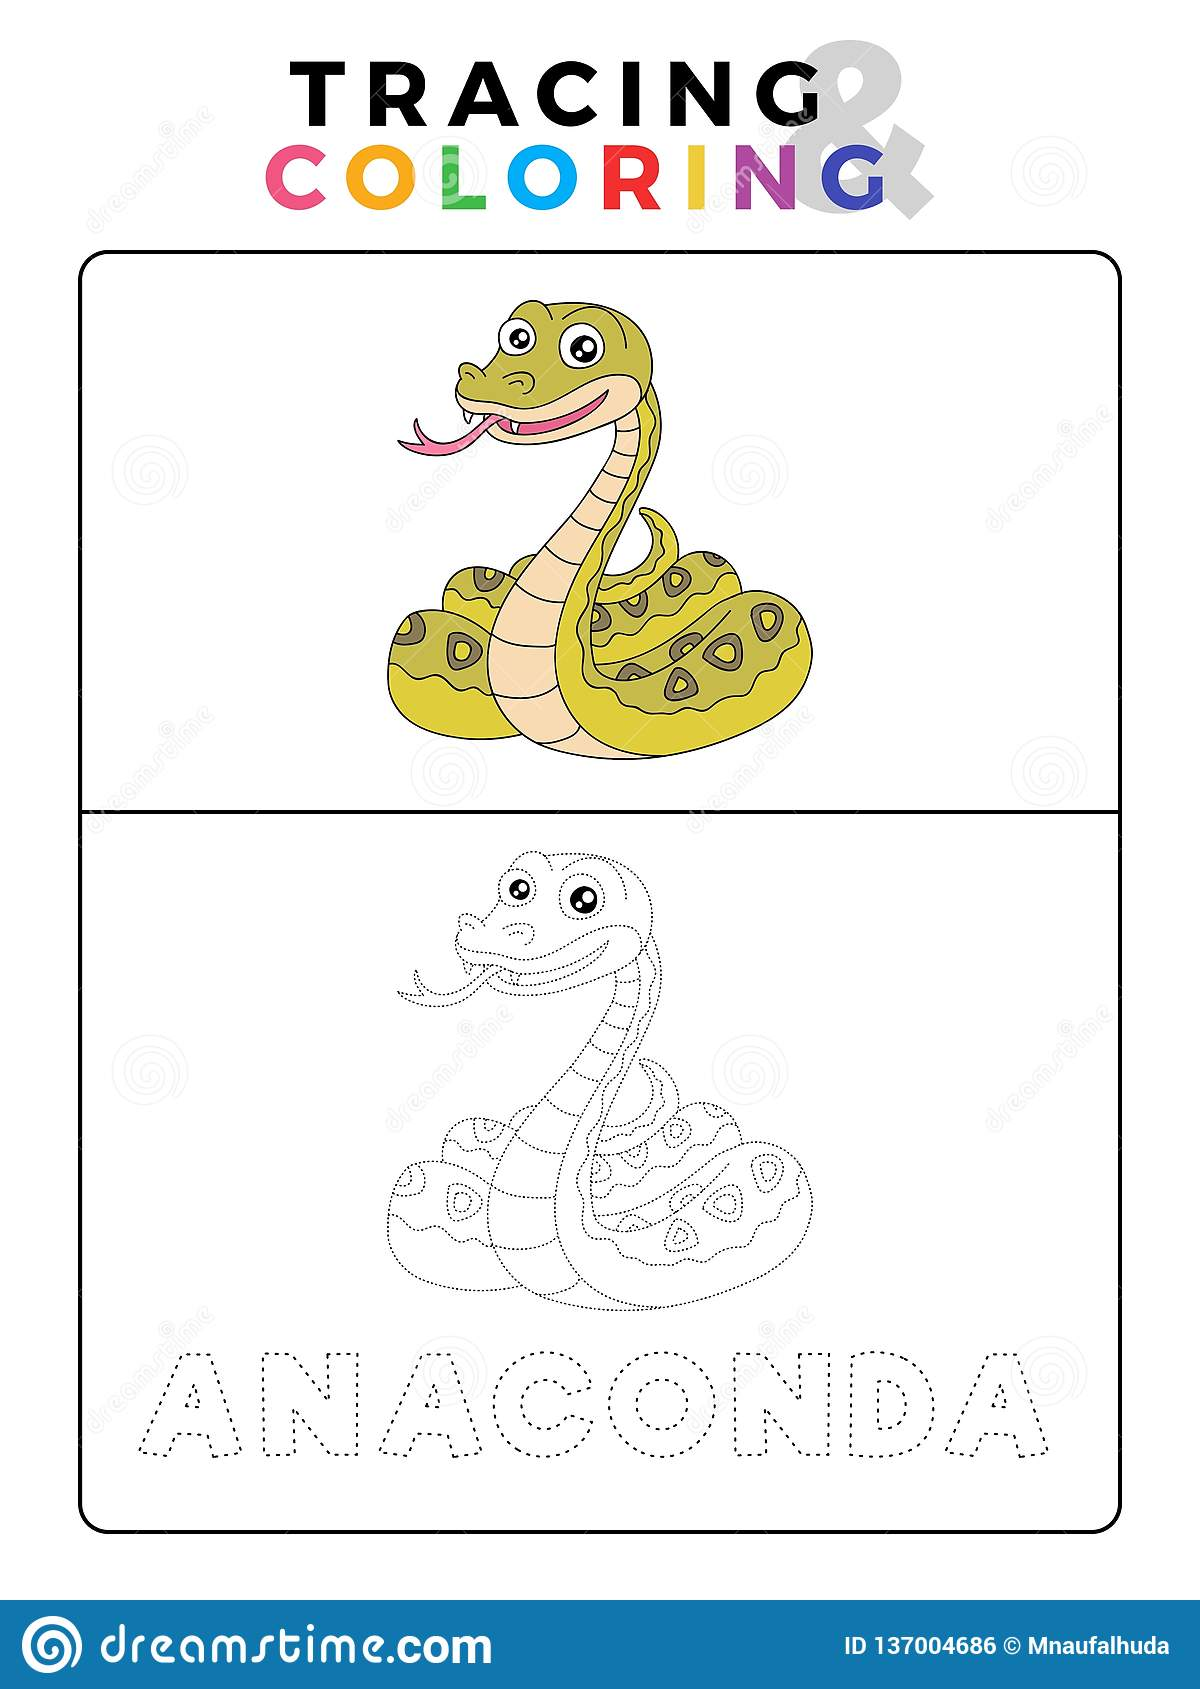 Funny Anaconda Snake Animal Tracing And Coloring Book With